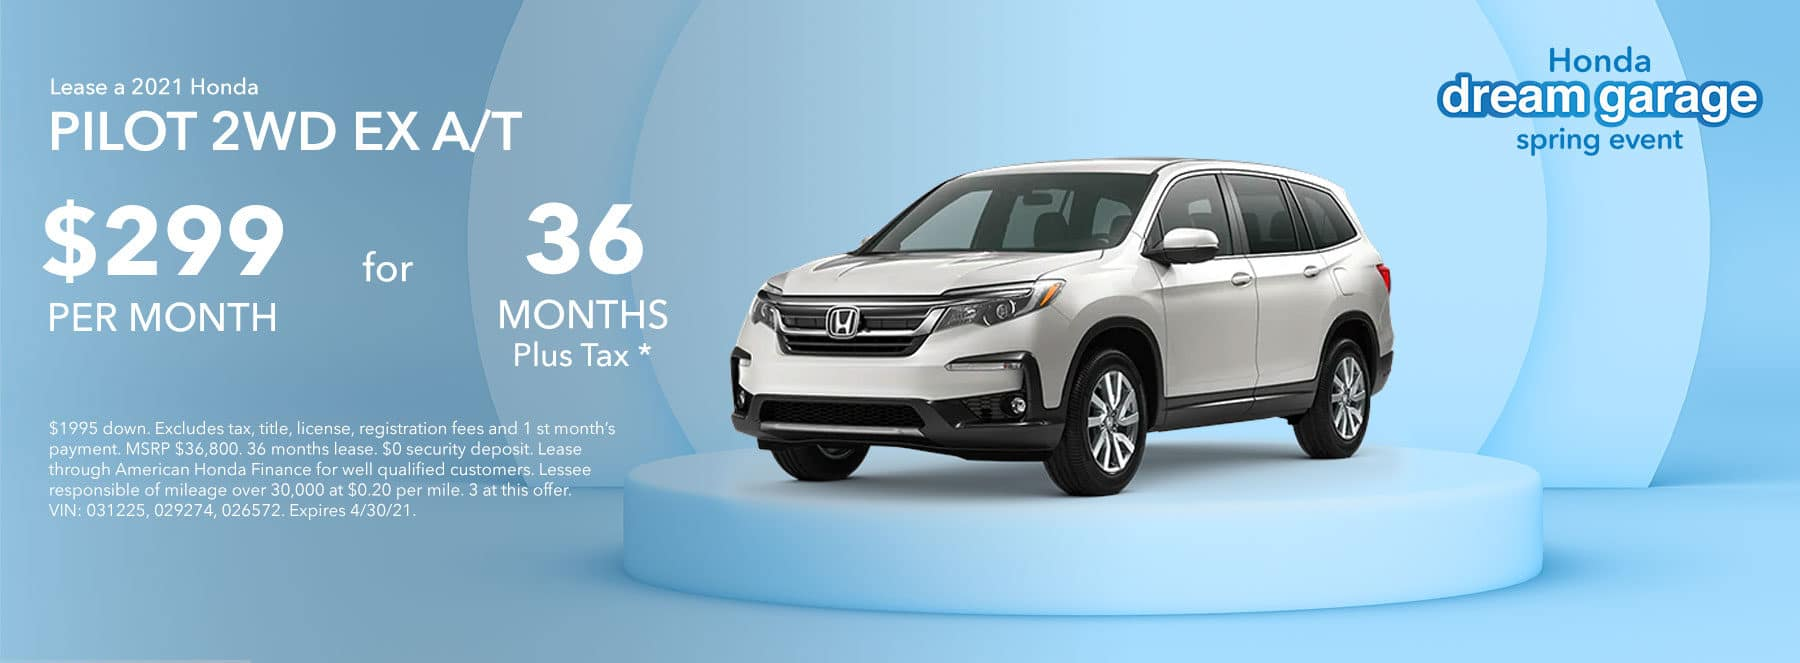 2021 Honda PILOT 2WD EX A/T Lease for $299 plus Tax for 36 Months